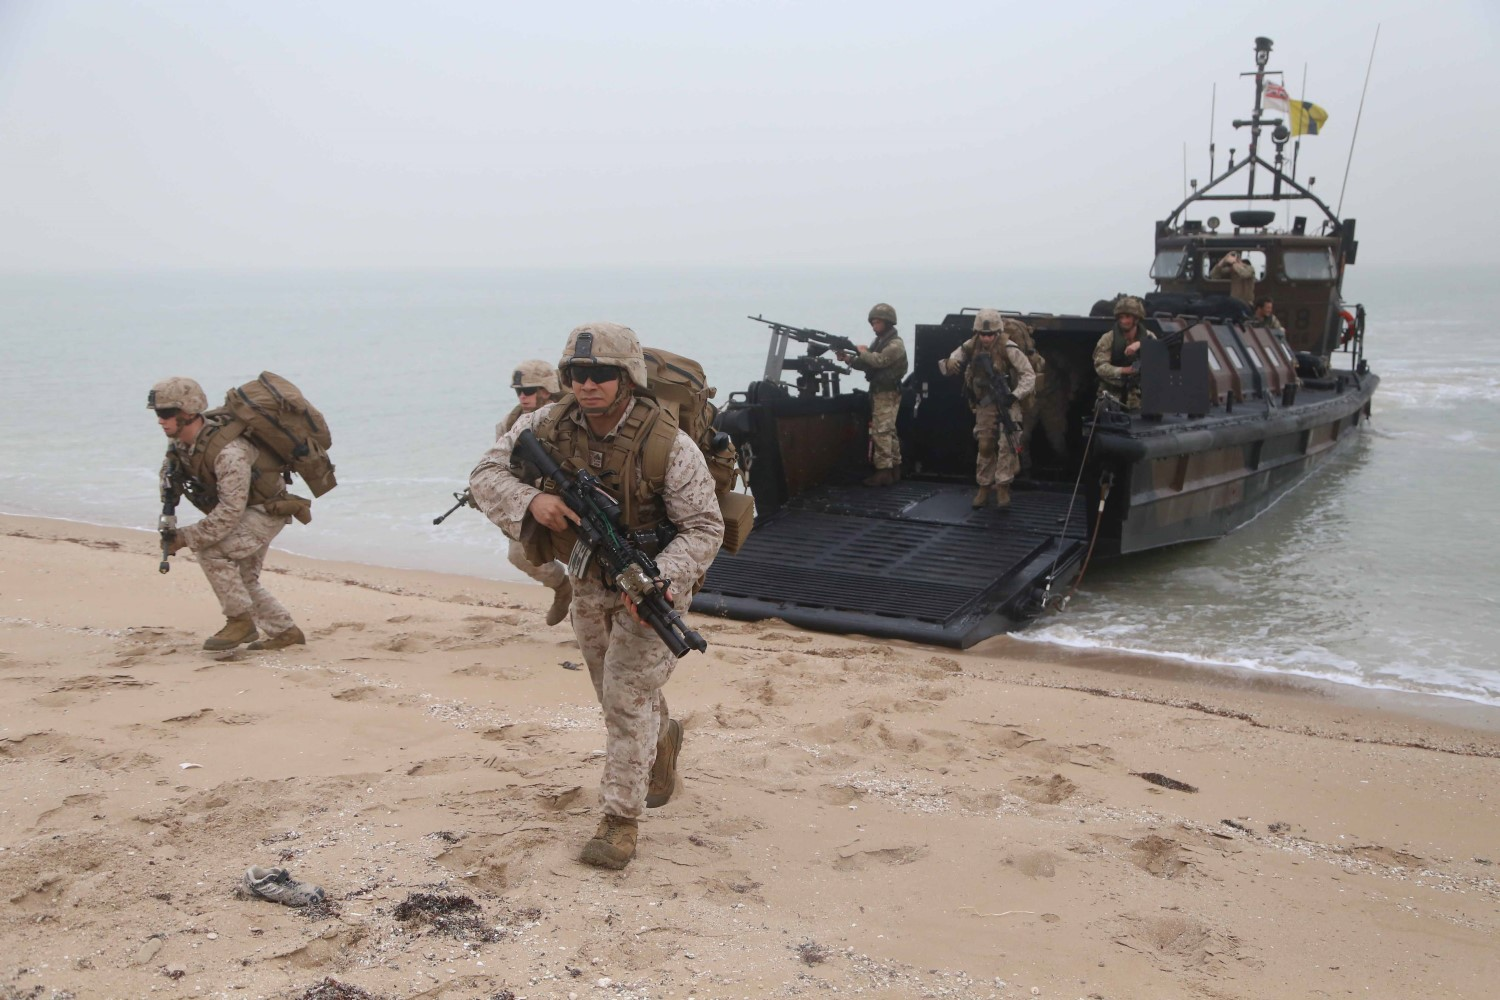 U.S. Marines with Fox Company, Battalion Landing Team 2nd Battalion, 1st Marines, 11th Marine Expeditionary Unit (MEU), disembark from a British landing craft vehicle personnel (LCVP) and rush toward their pre-designated security positions during Exercise Cougar Voyage 2015. US Marine Corps Photo